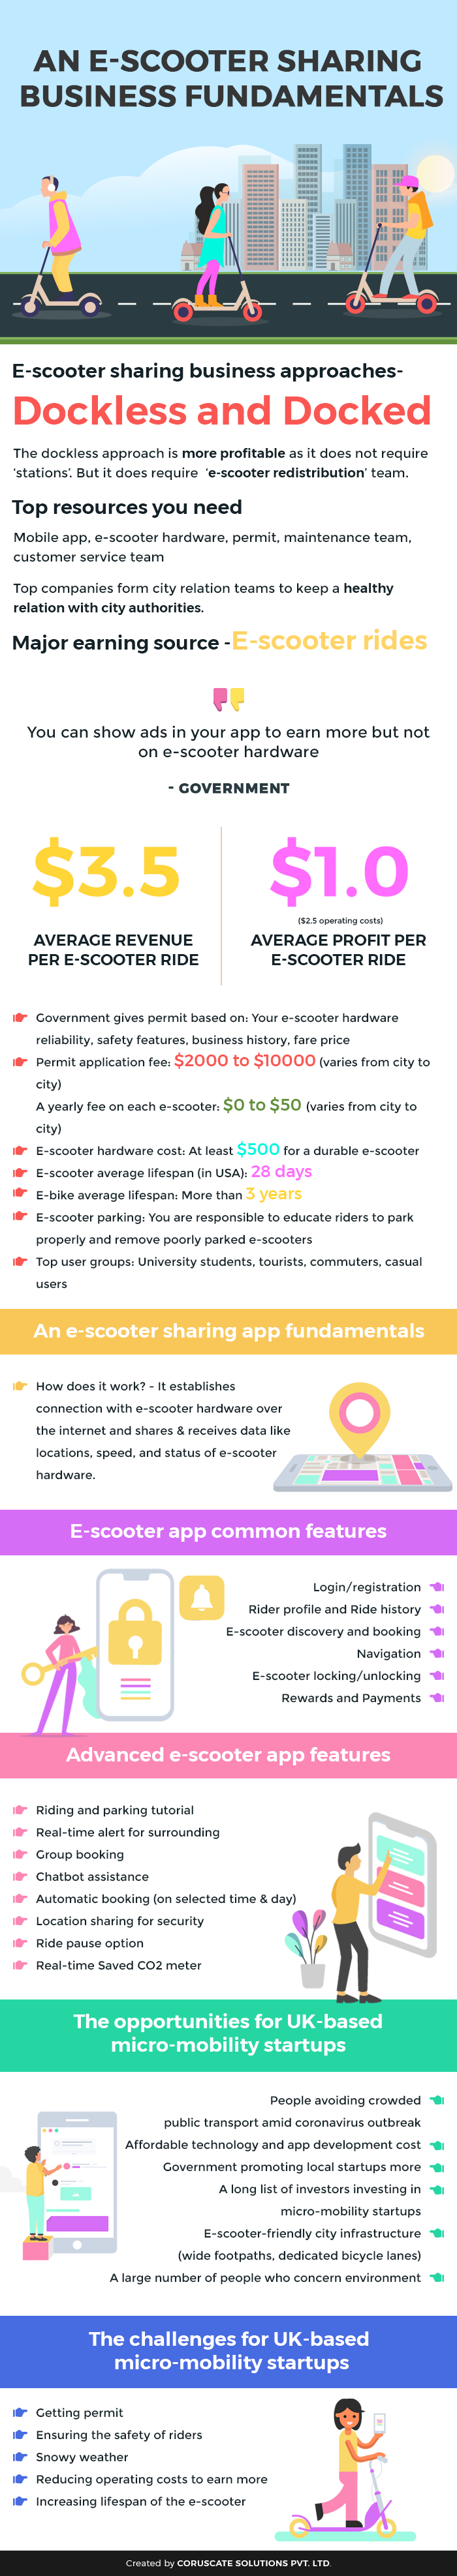 An e-scooter sharing business fundamentals